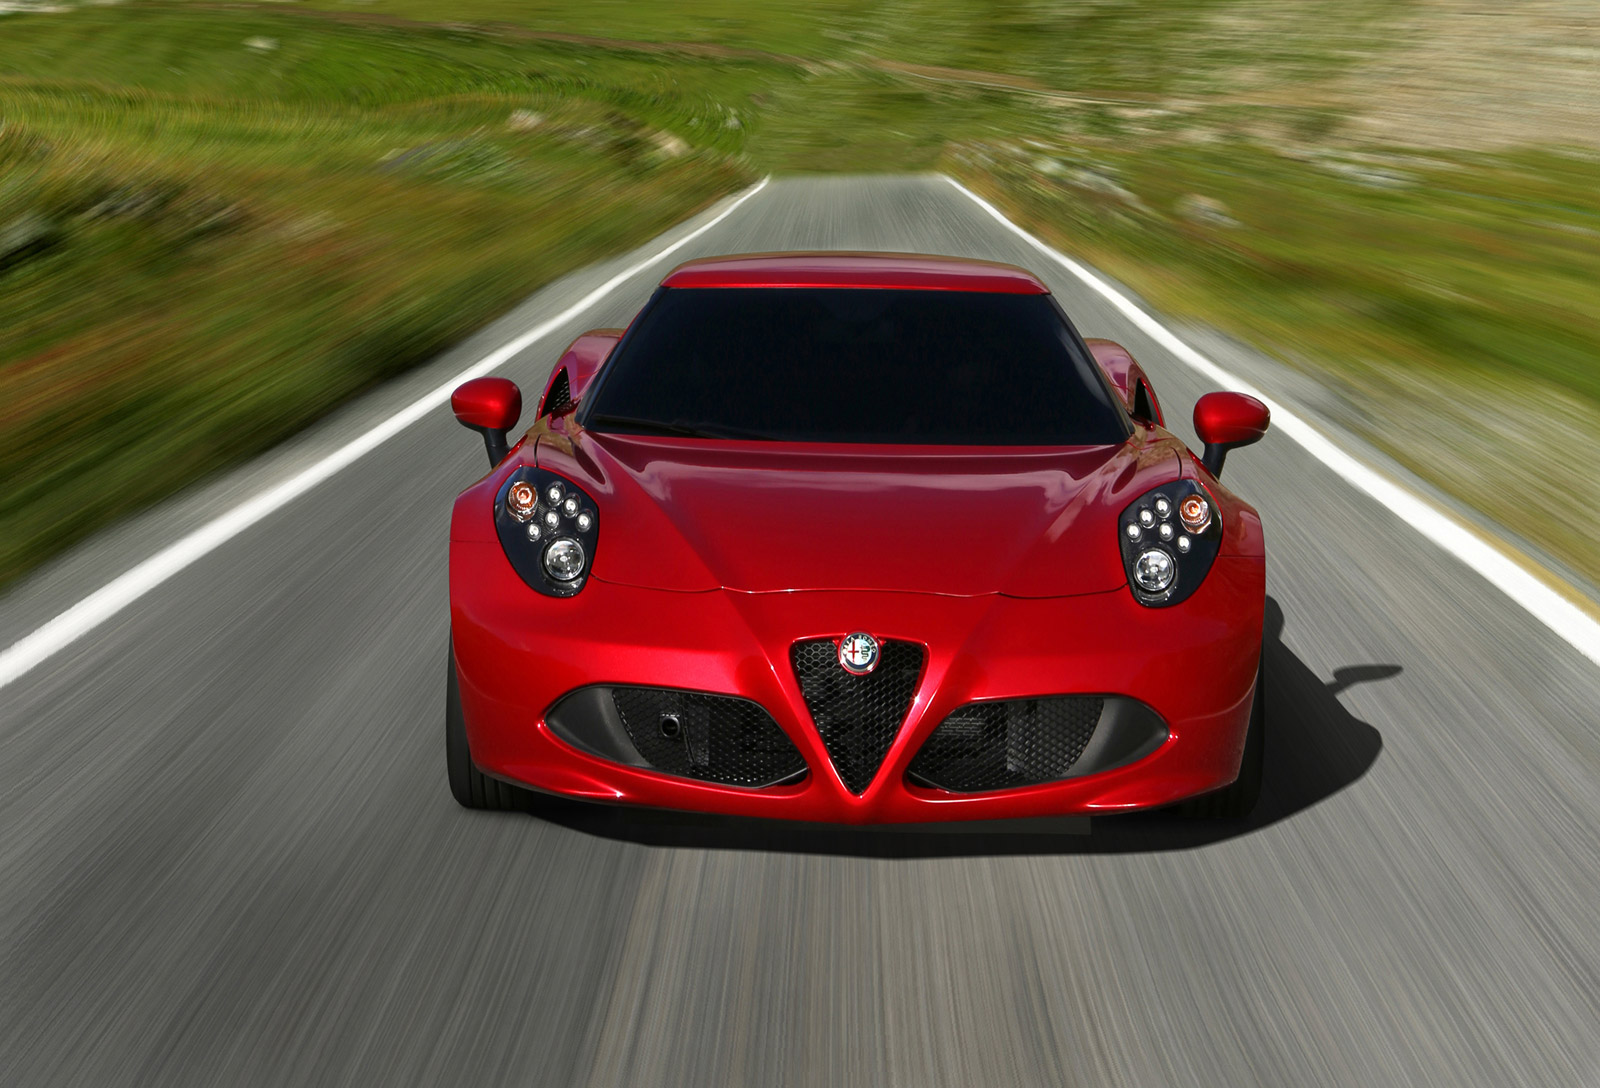 alfa romeo 39 s u s return starts with 2015 4c debut in new york. Black Bedroom Furniture Sets. Home Design Ideas